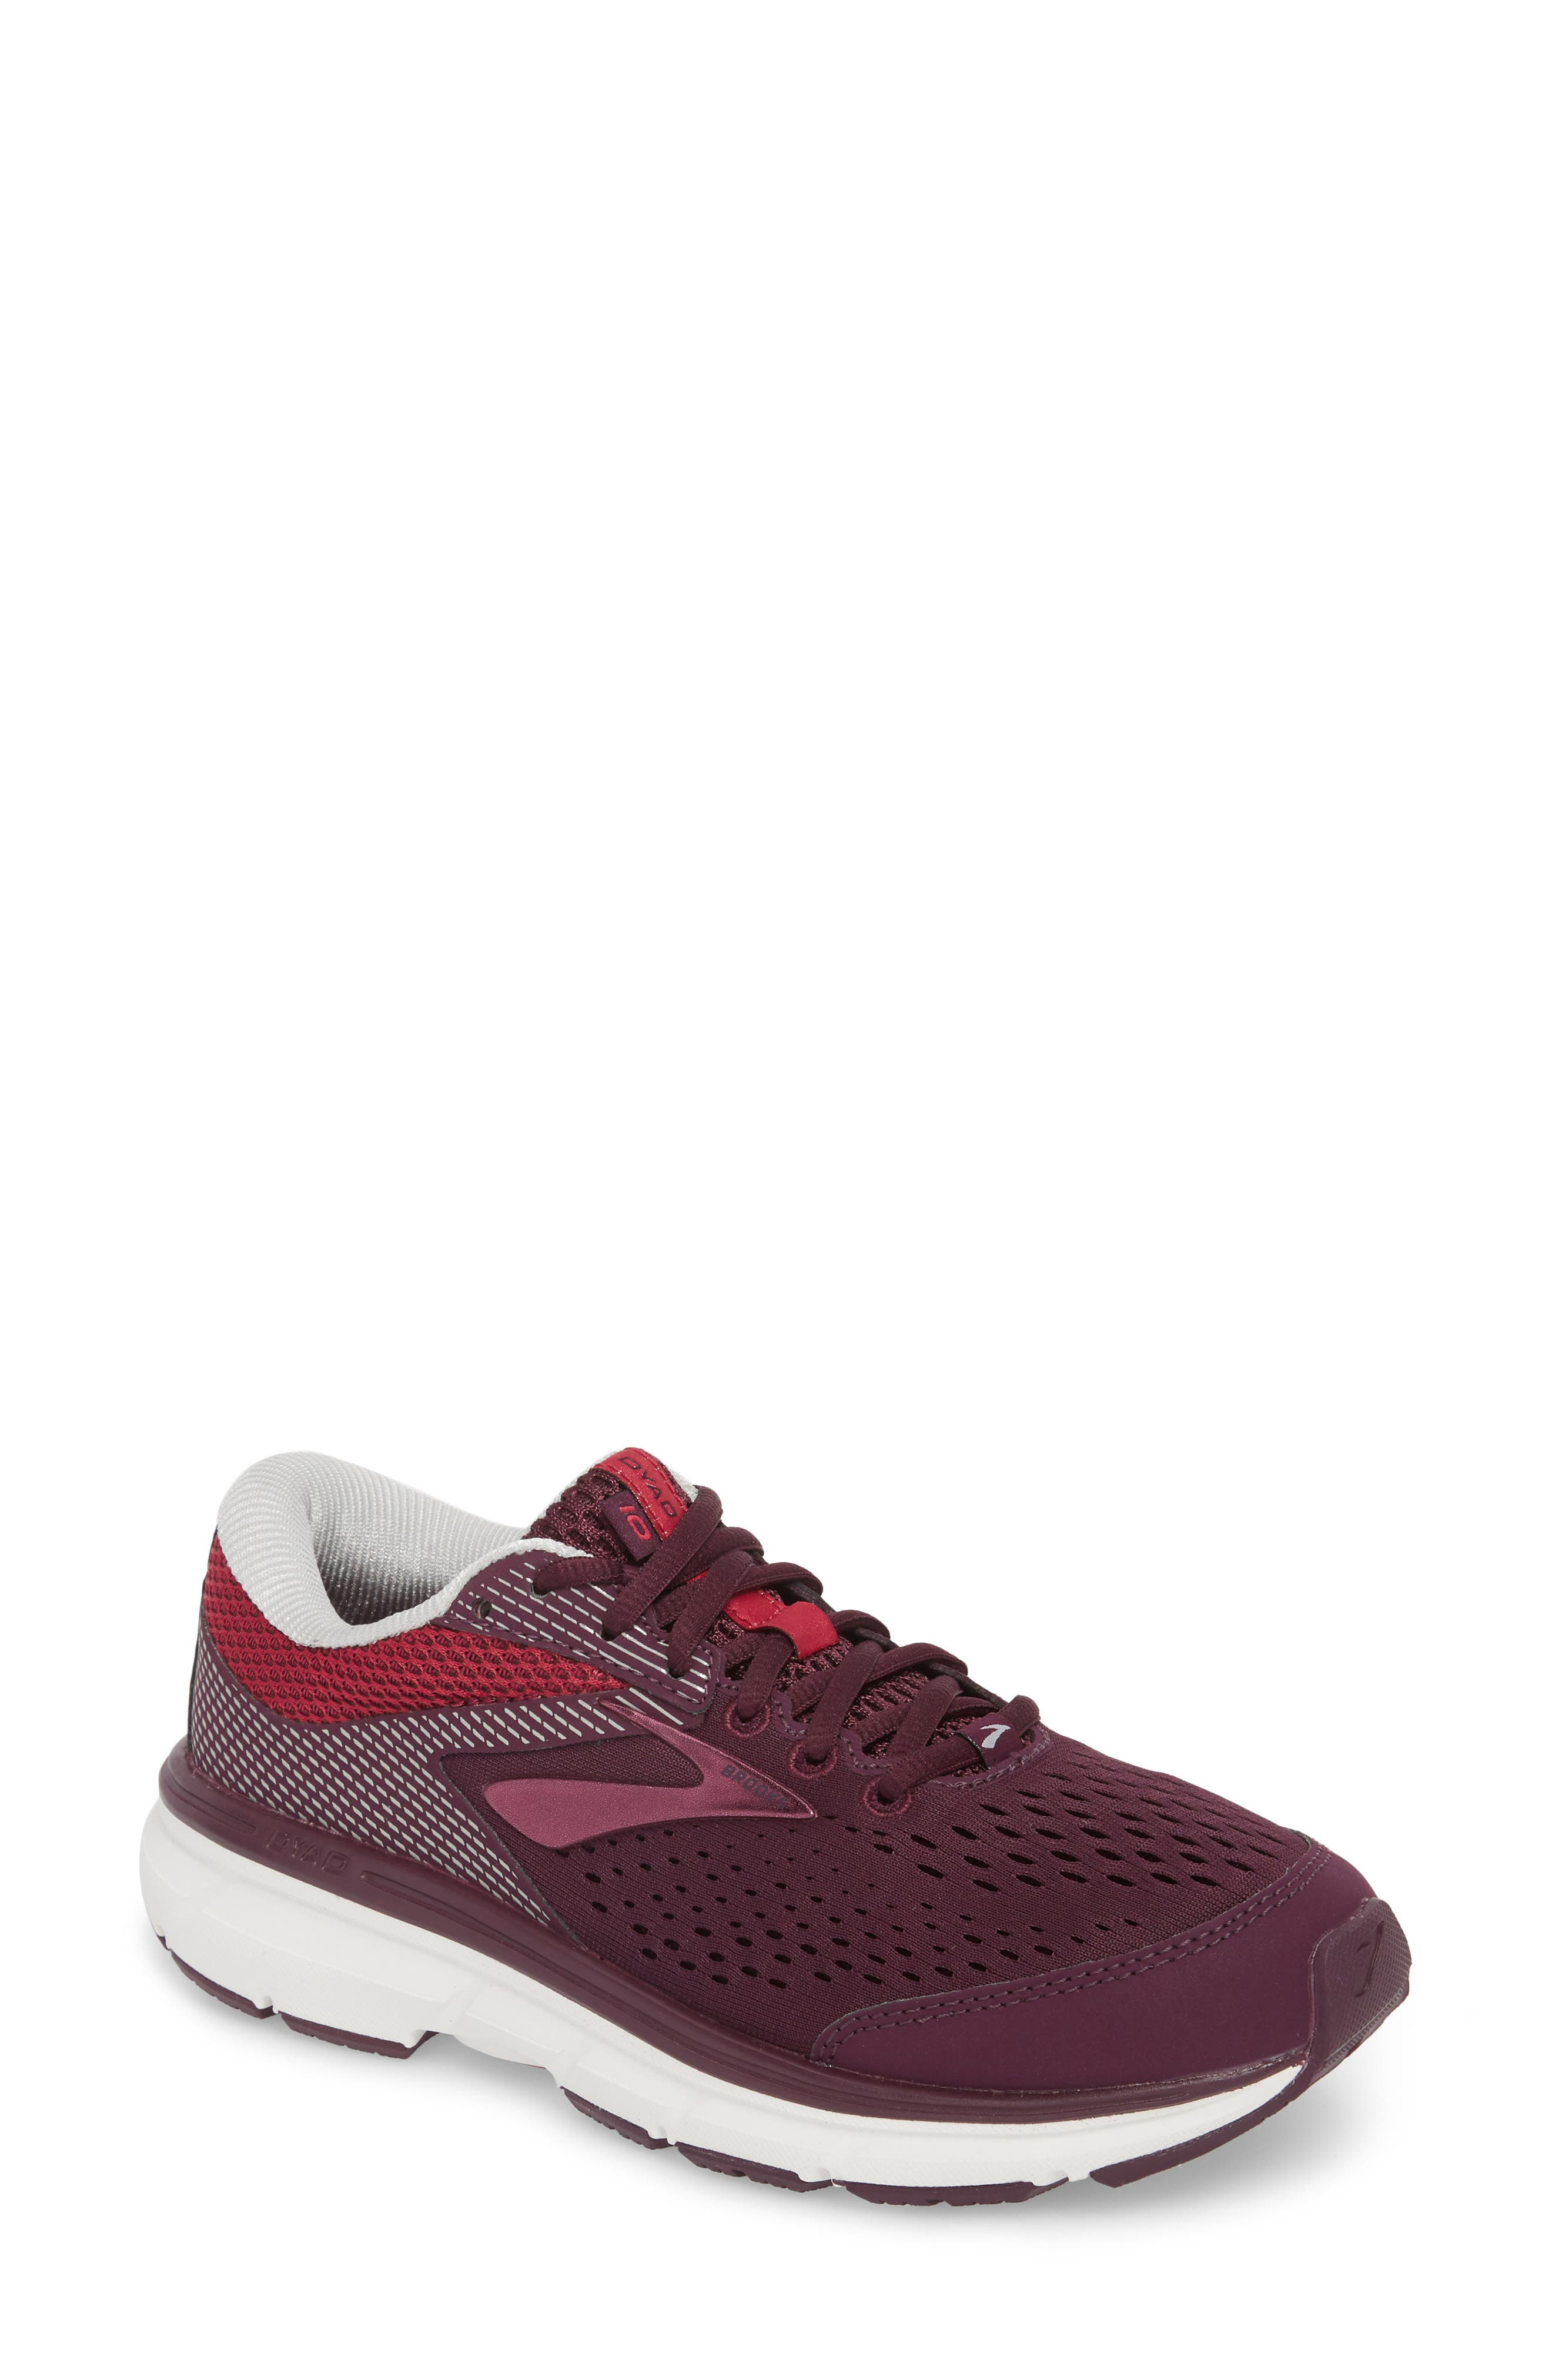 Dyad 10 Running Shoe,                         Main,                         color, PURPLE/ PINK/ GREY